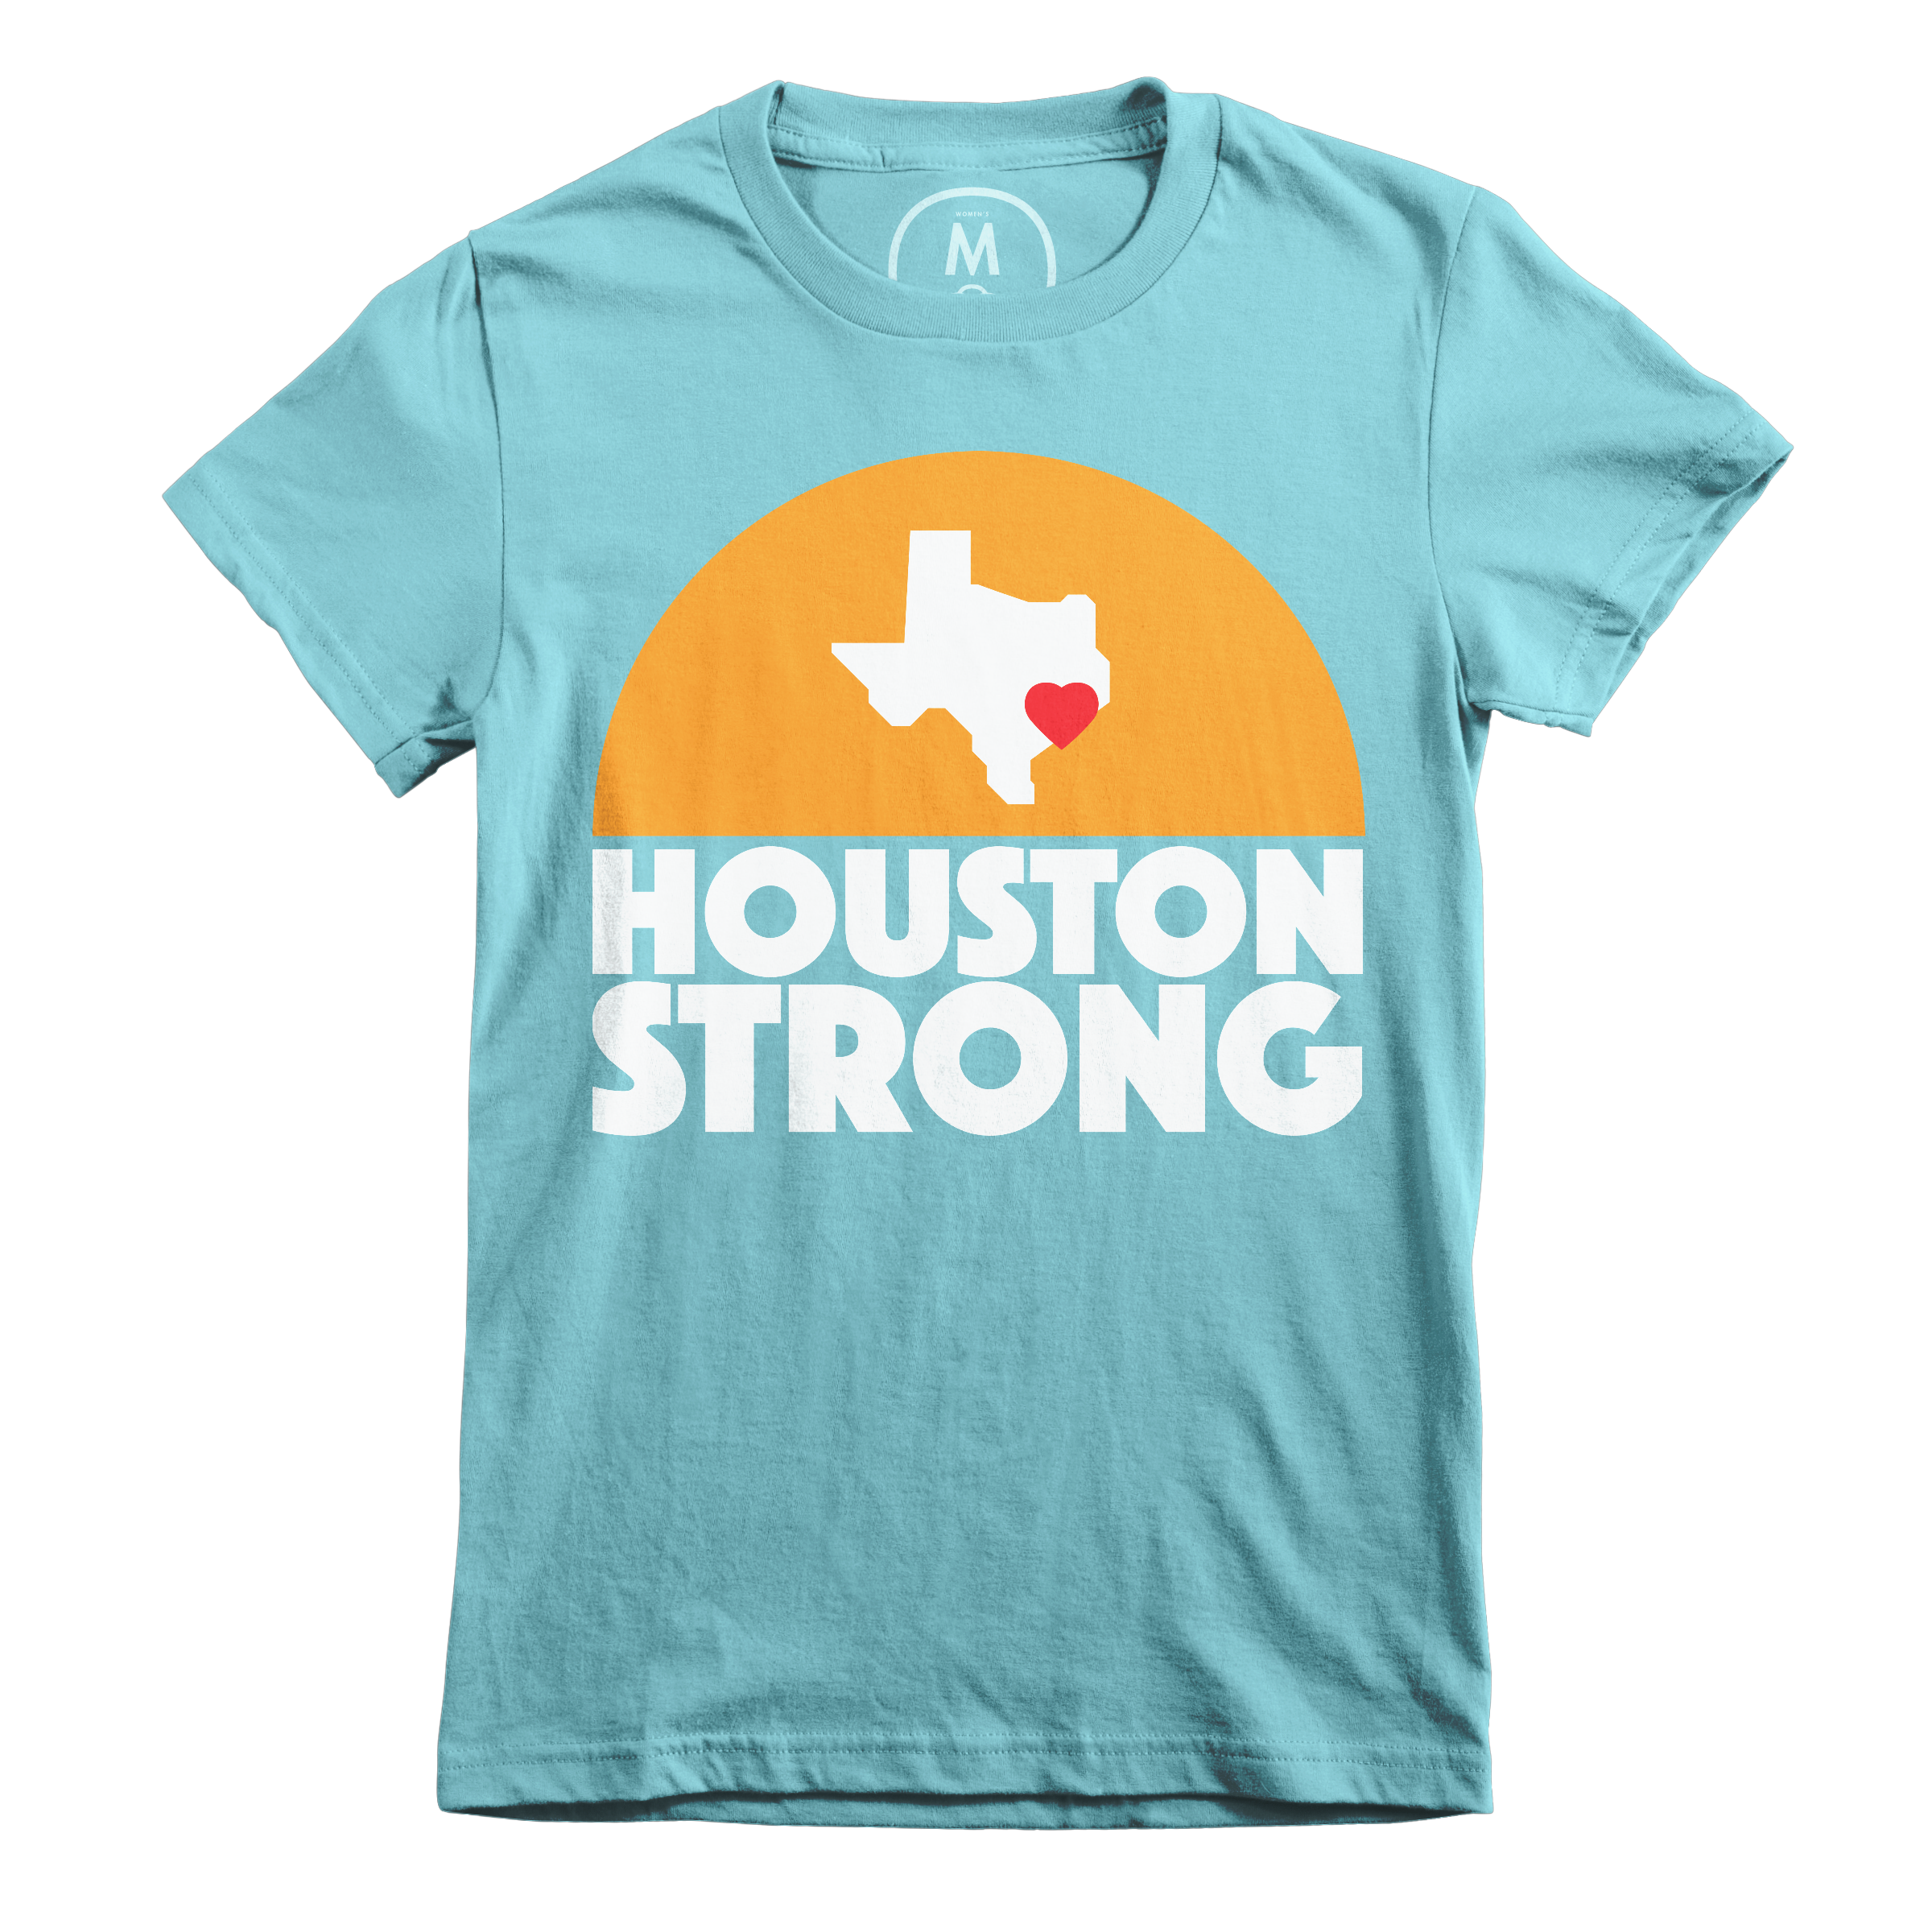 Houston Strong Tahiti Blue (Women's)